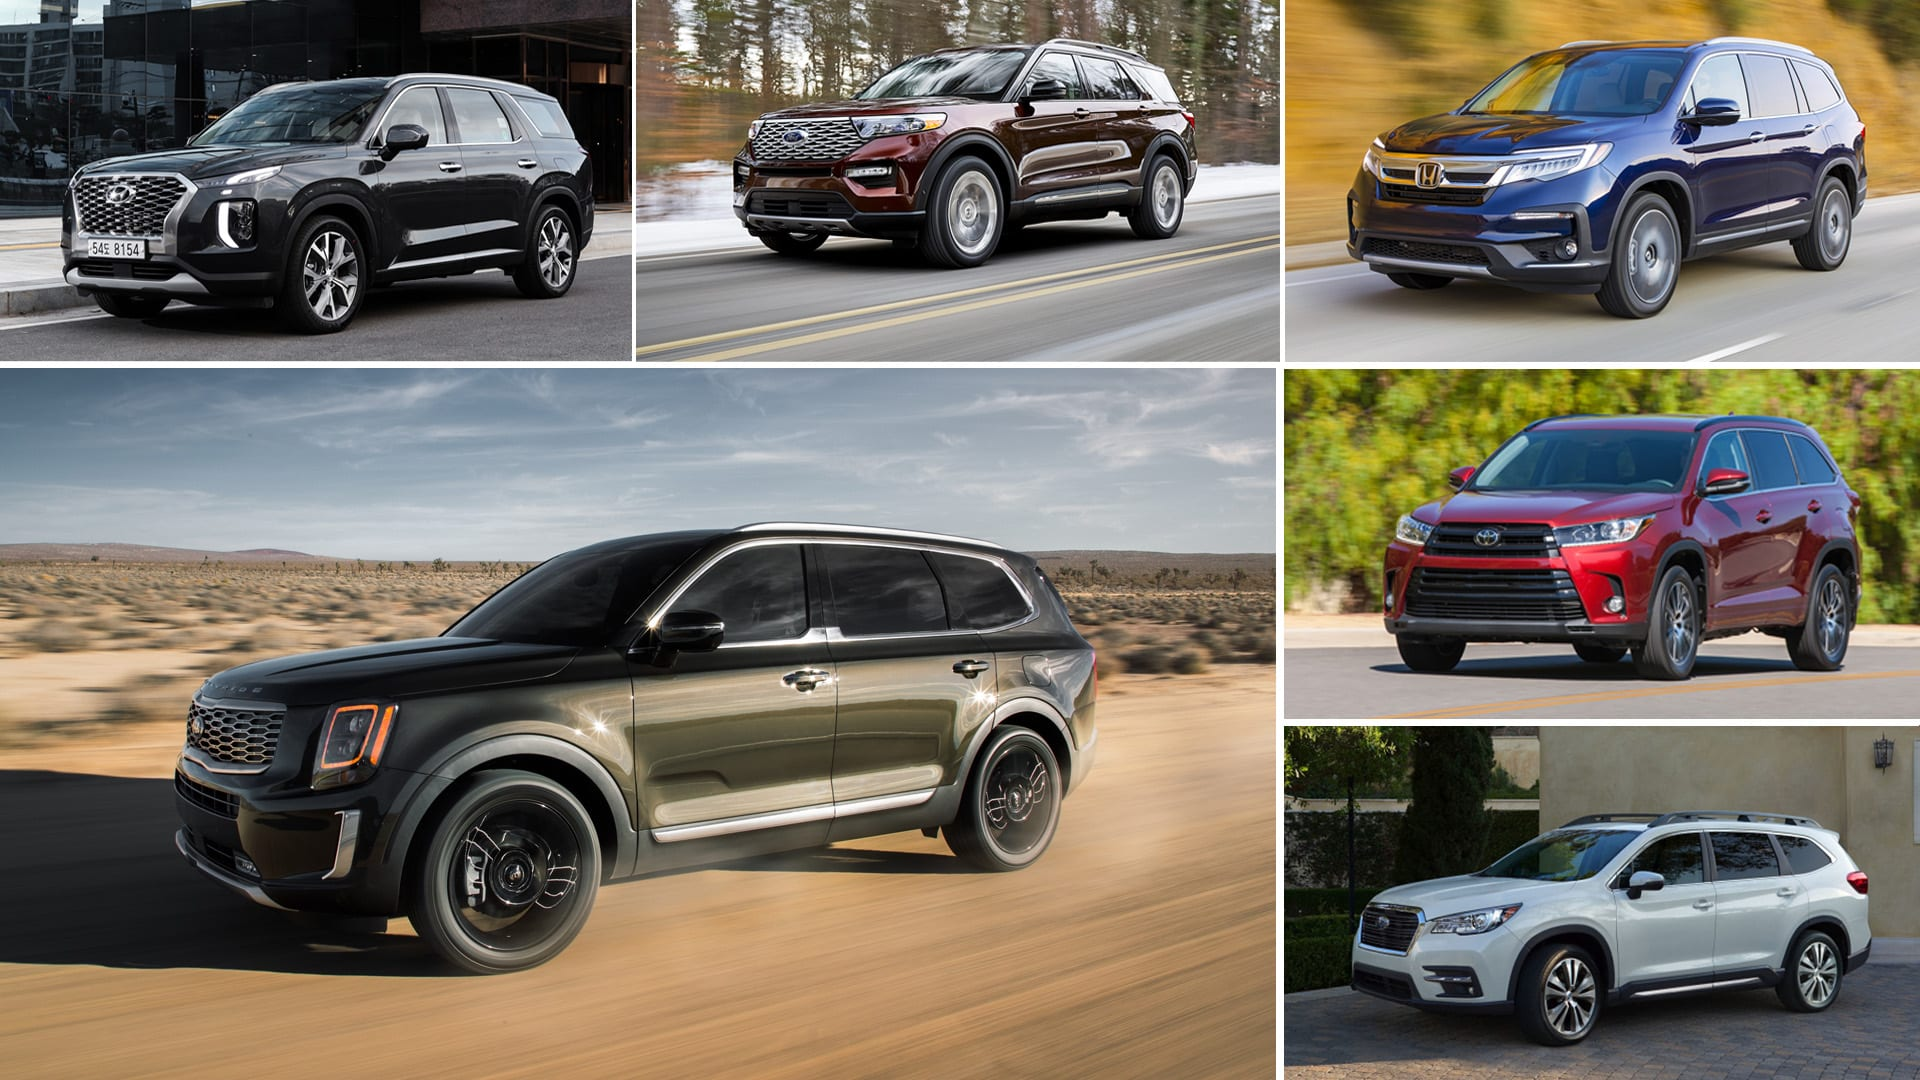 2020 Kia Telluride vs Other 3-Row Crossovers